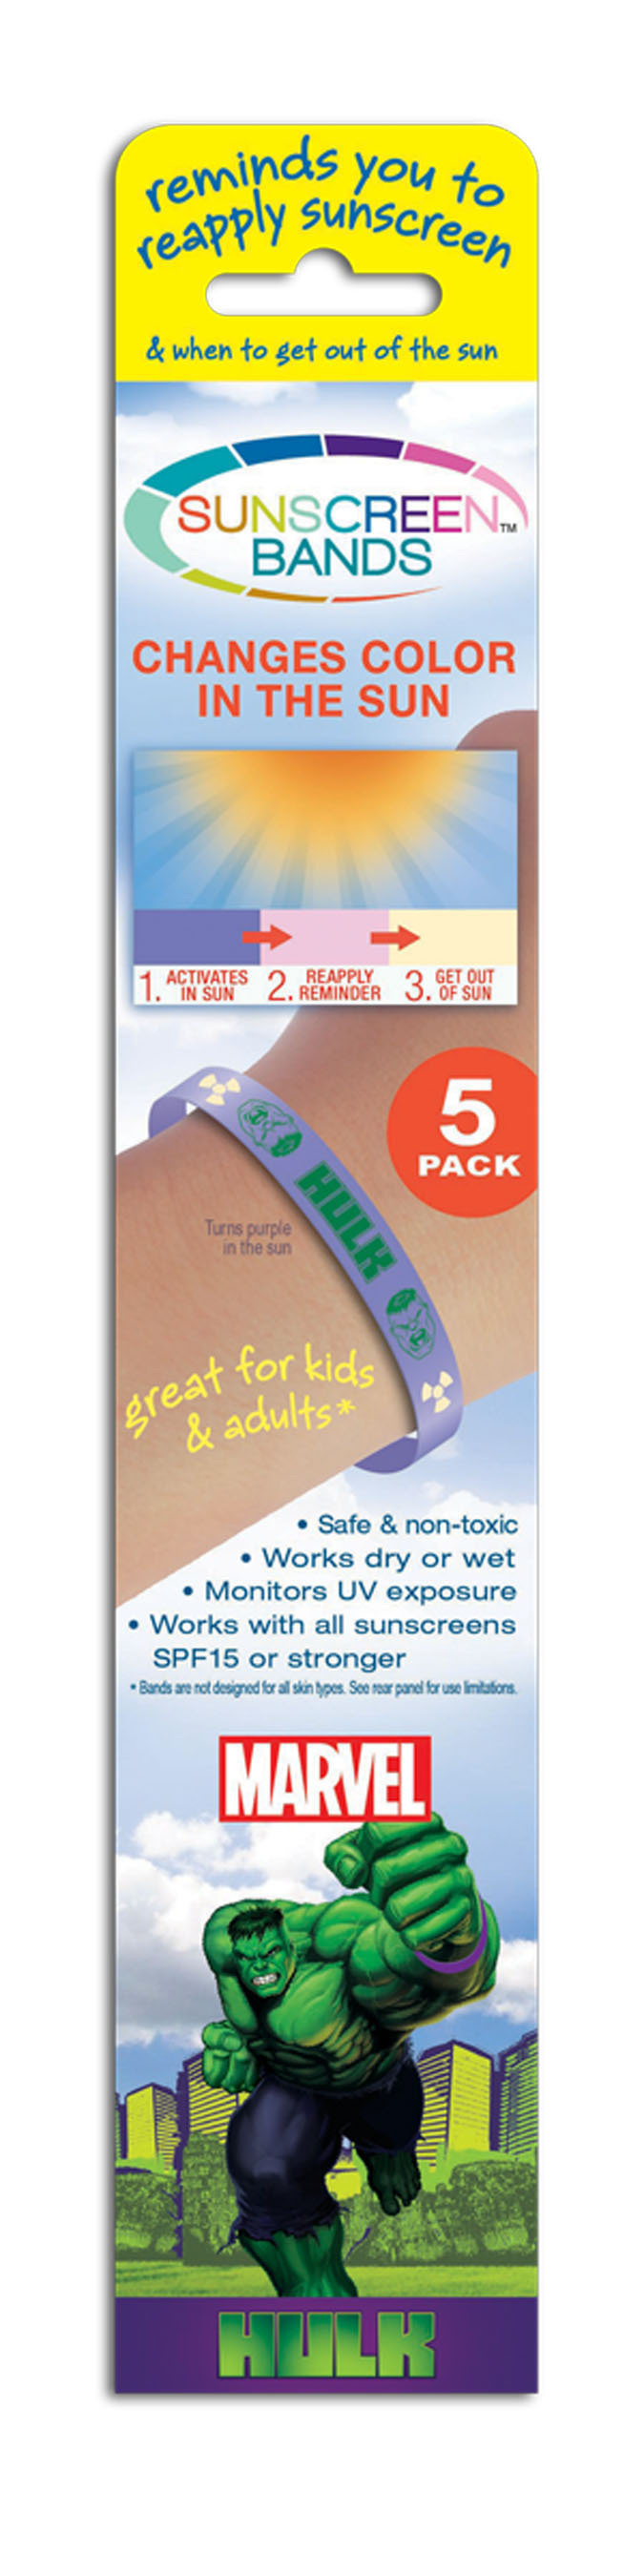 Sunscreen Bands Monitor UV Exposure and Come in Fun Designs.  (PRNewsFoto/JADS International, LLC)